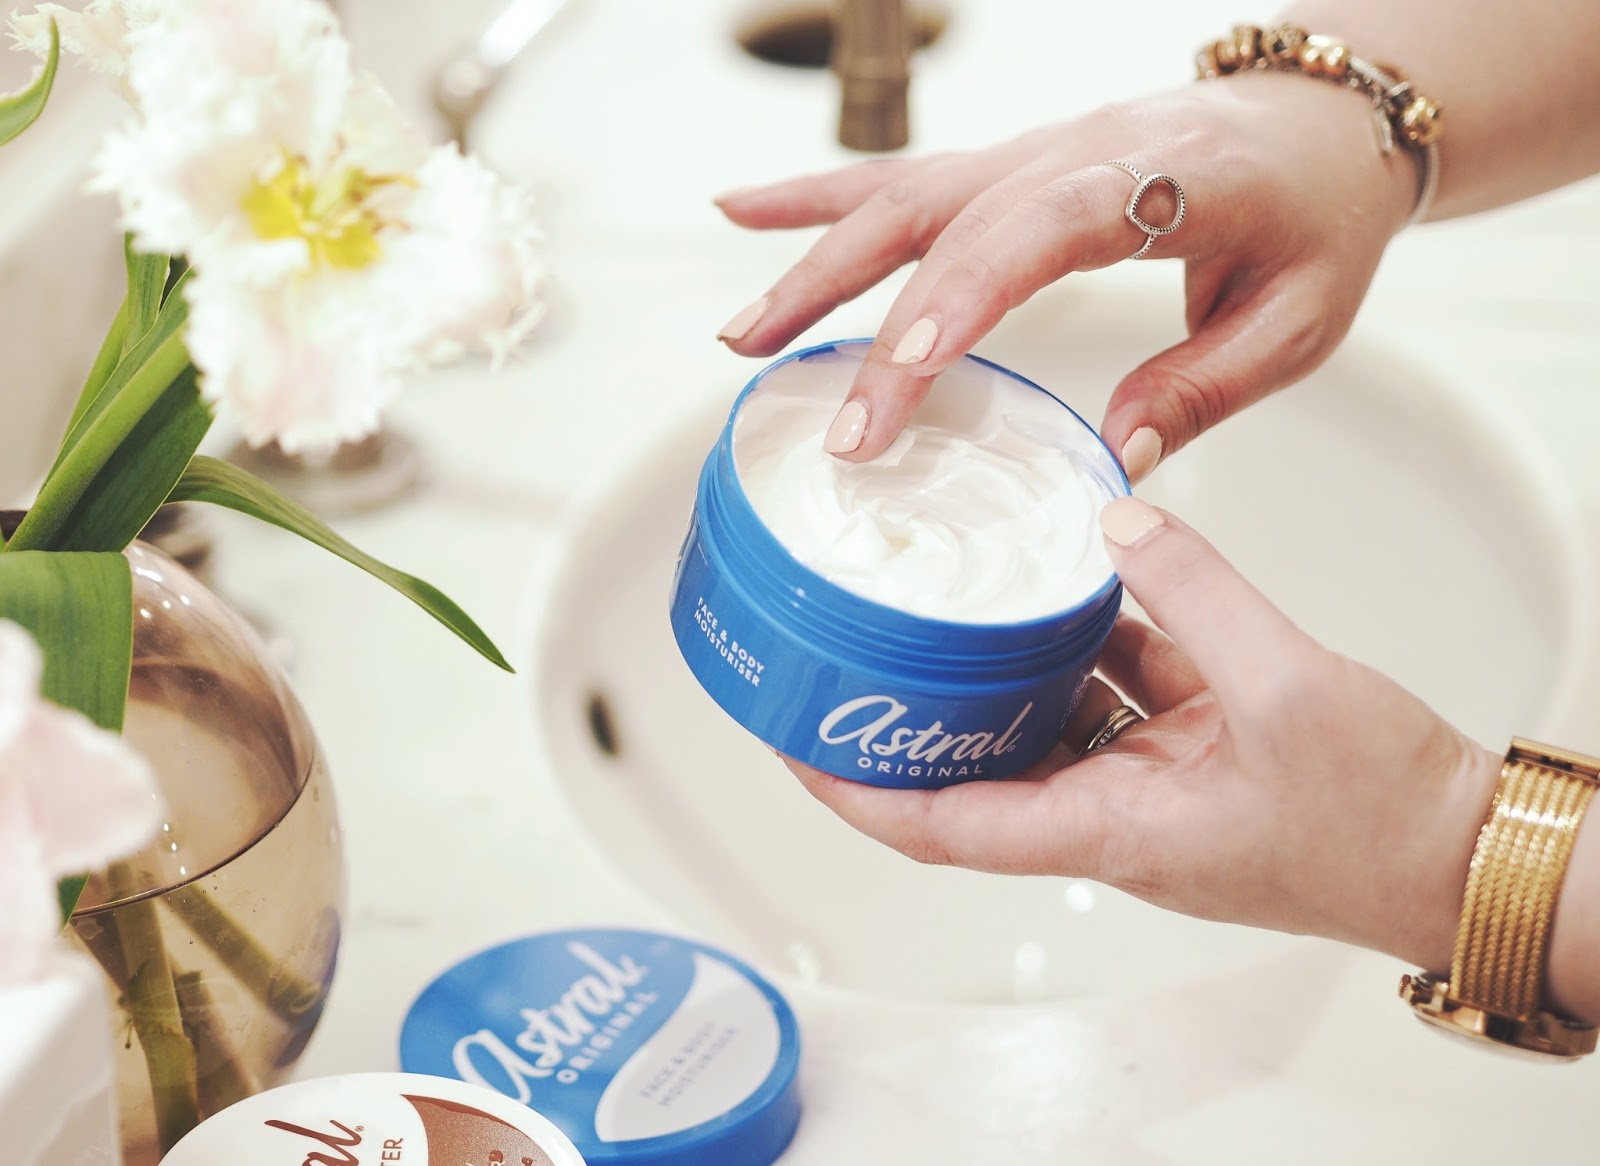 A One Pot Wonder That's Stood The Test of Time: Astral Is The Original Multi-Purpose Cream